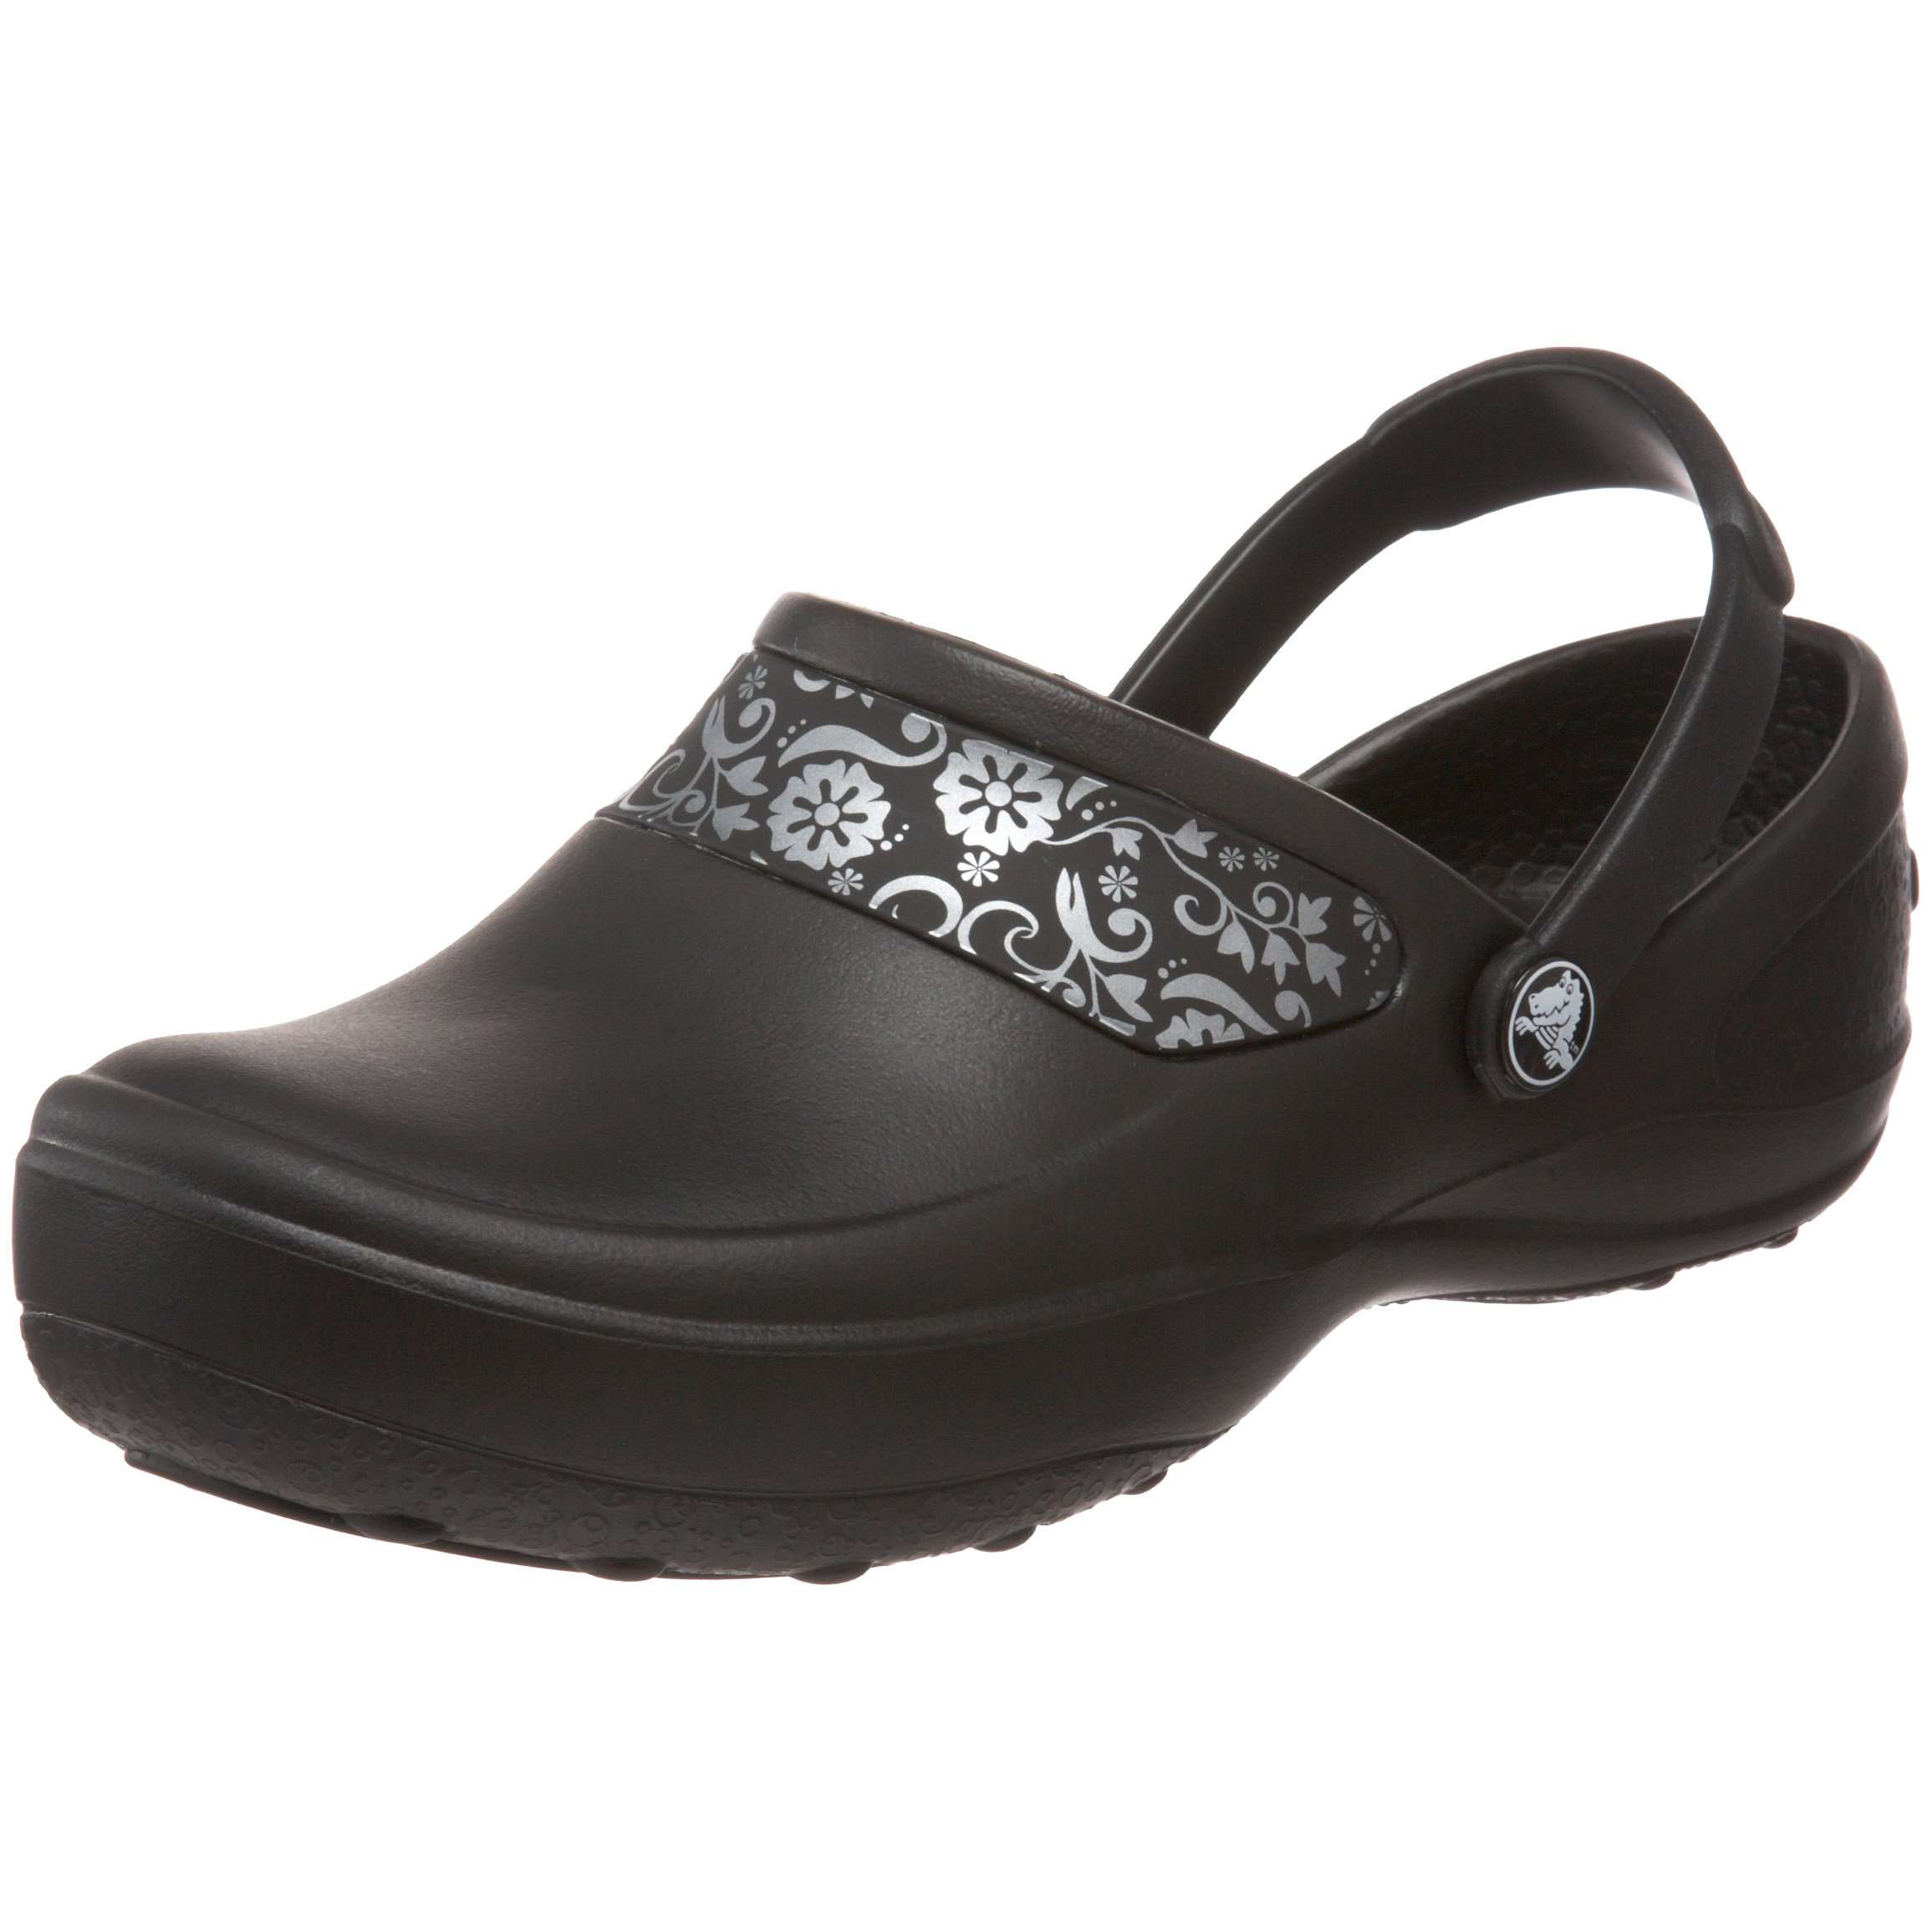 Crocs Women's Mercy Clog, Black/Silver, 8 M US